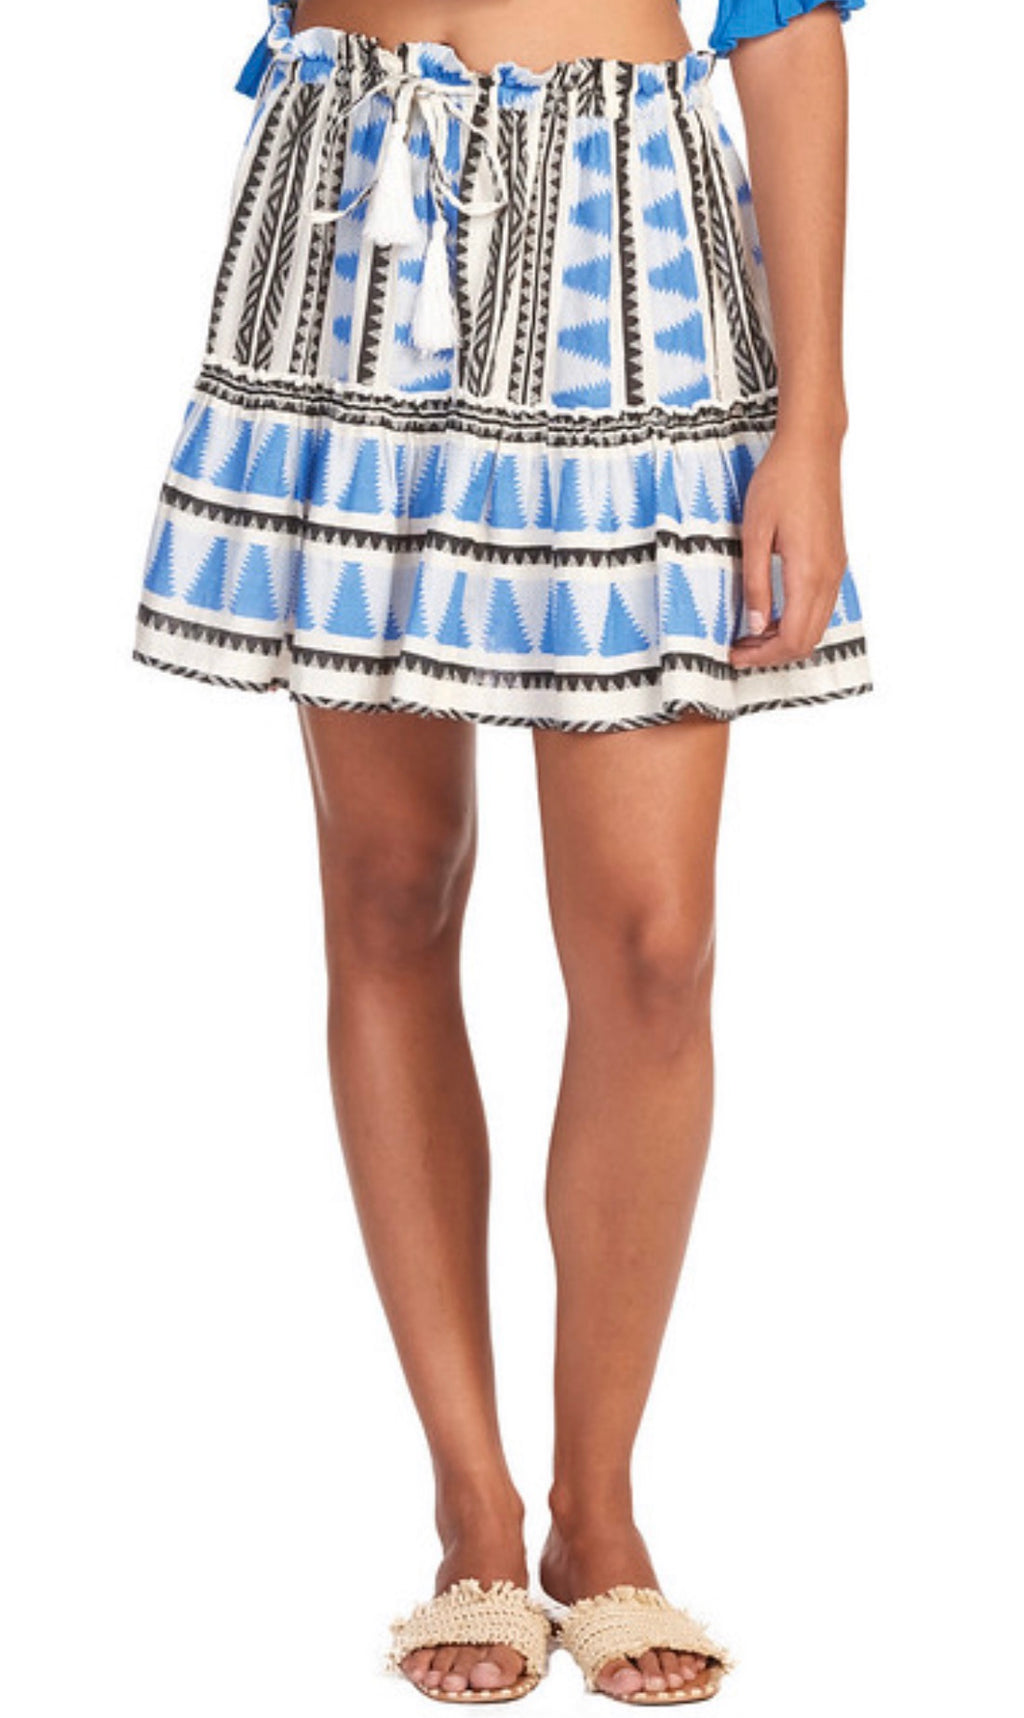 Blue Aztec Ruffle Skirt